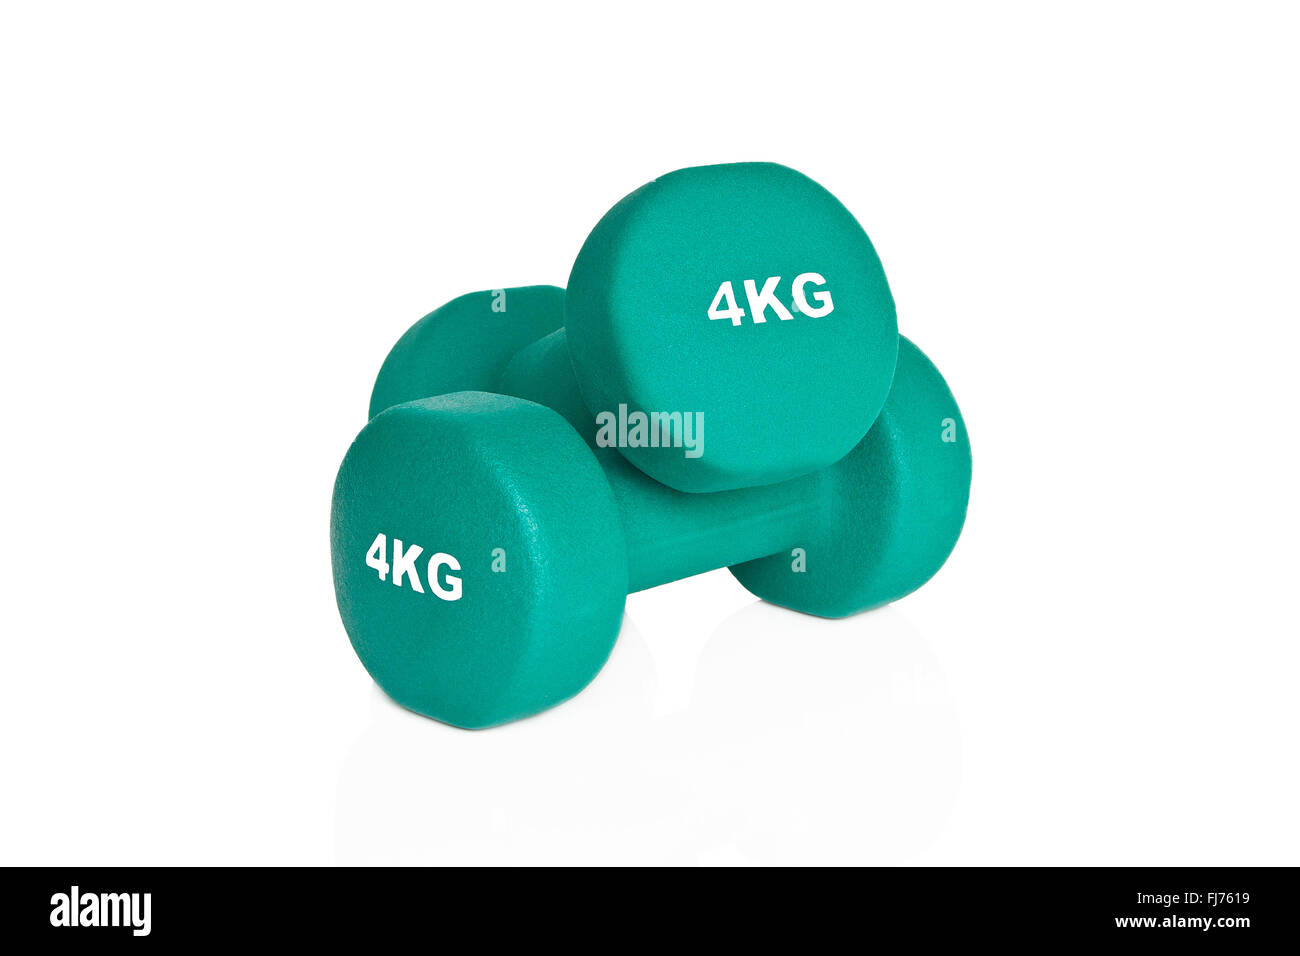 Green 4kg dumbbells isolated on white background. Weights for a fitness training. - Stock Image